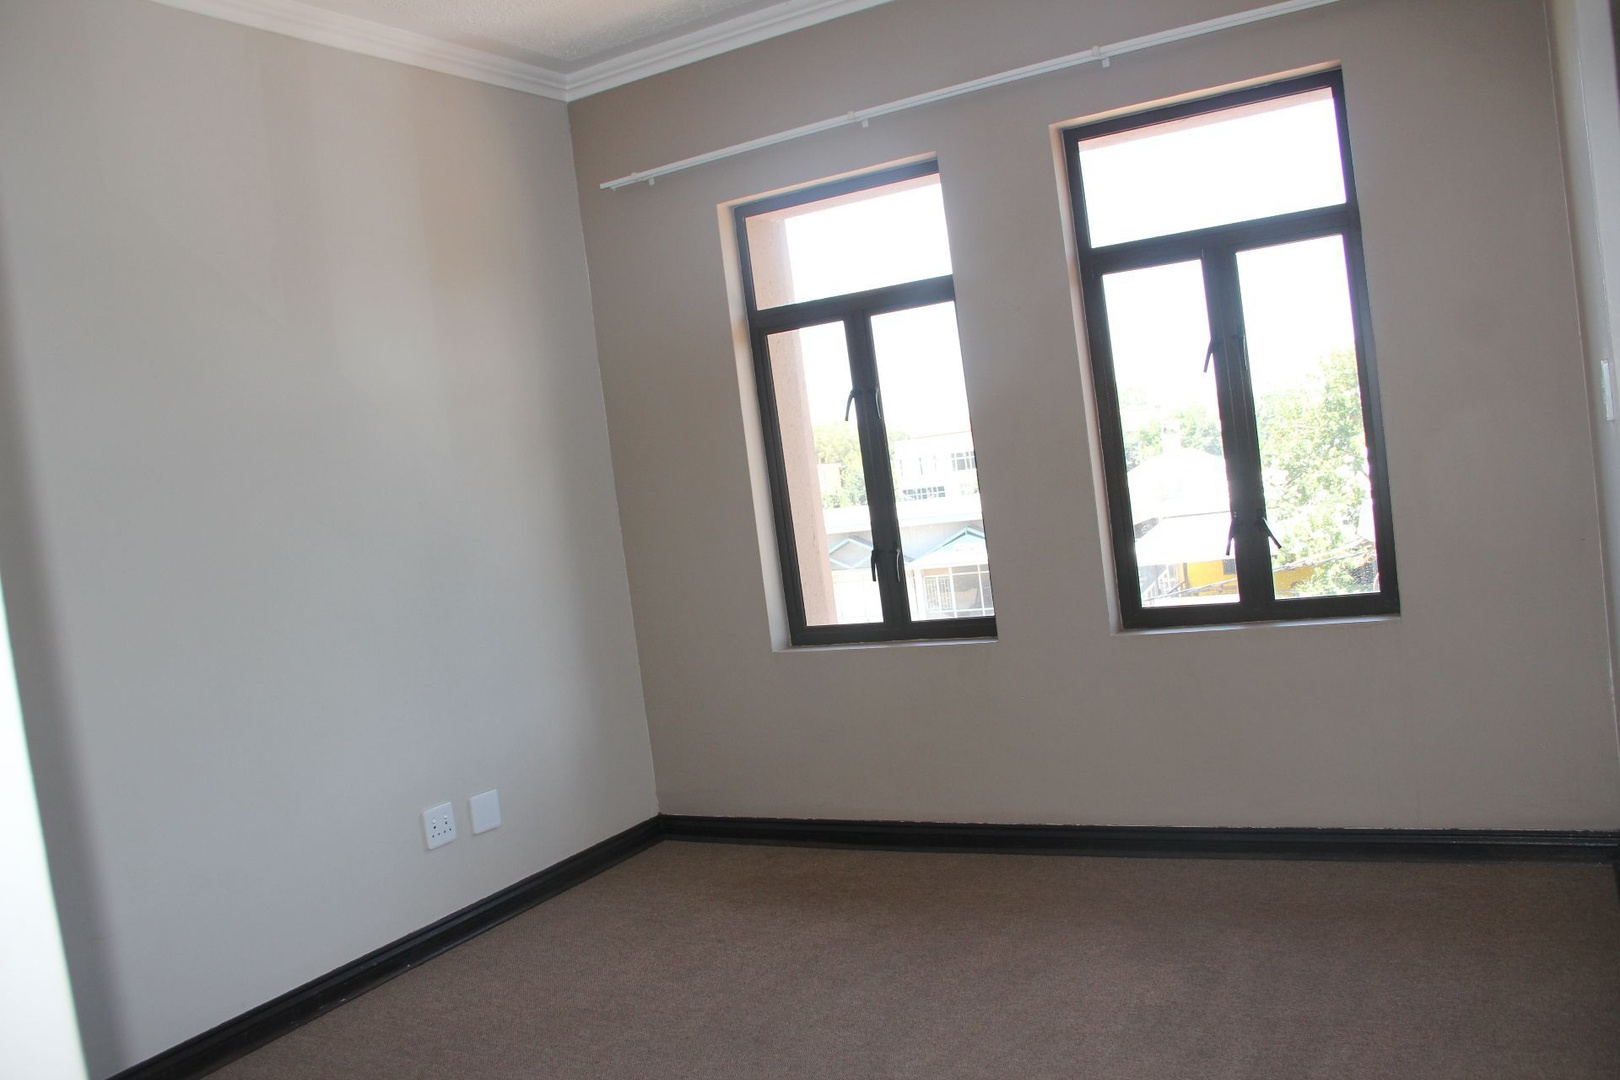 Apartment in Bult - Bedroom a.JPG